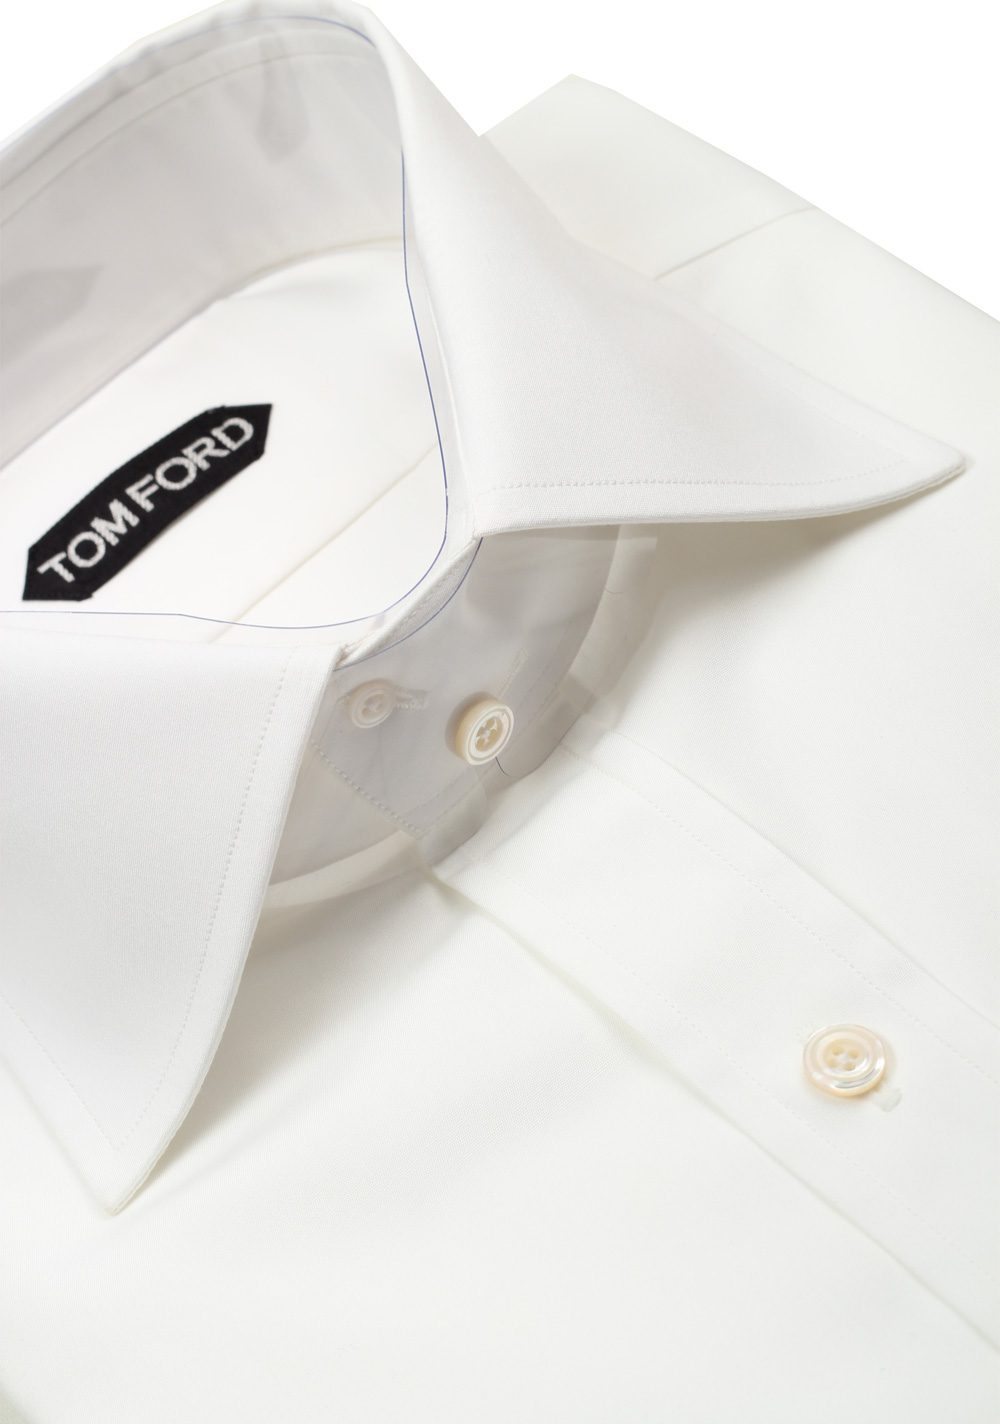 TOM FORD Solid White Dress Shirt French Cuffs Size 41 / 16 U.S. Slim Fit   Costume Limité